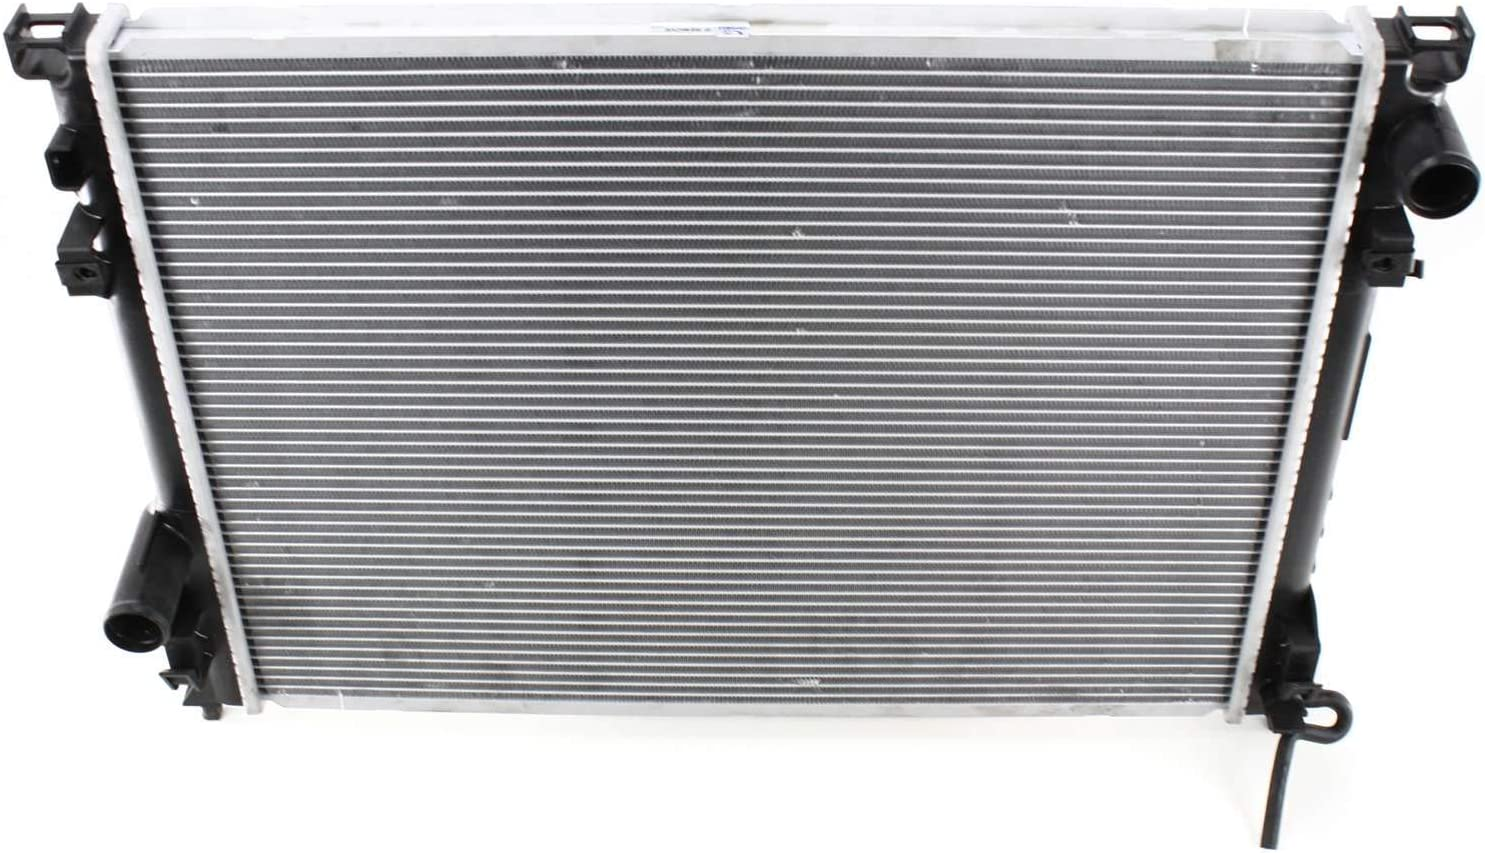 OSC New Heavy Duty AC Condenser Fits Dodge Charger 2006-2008